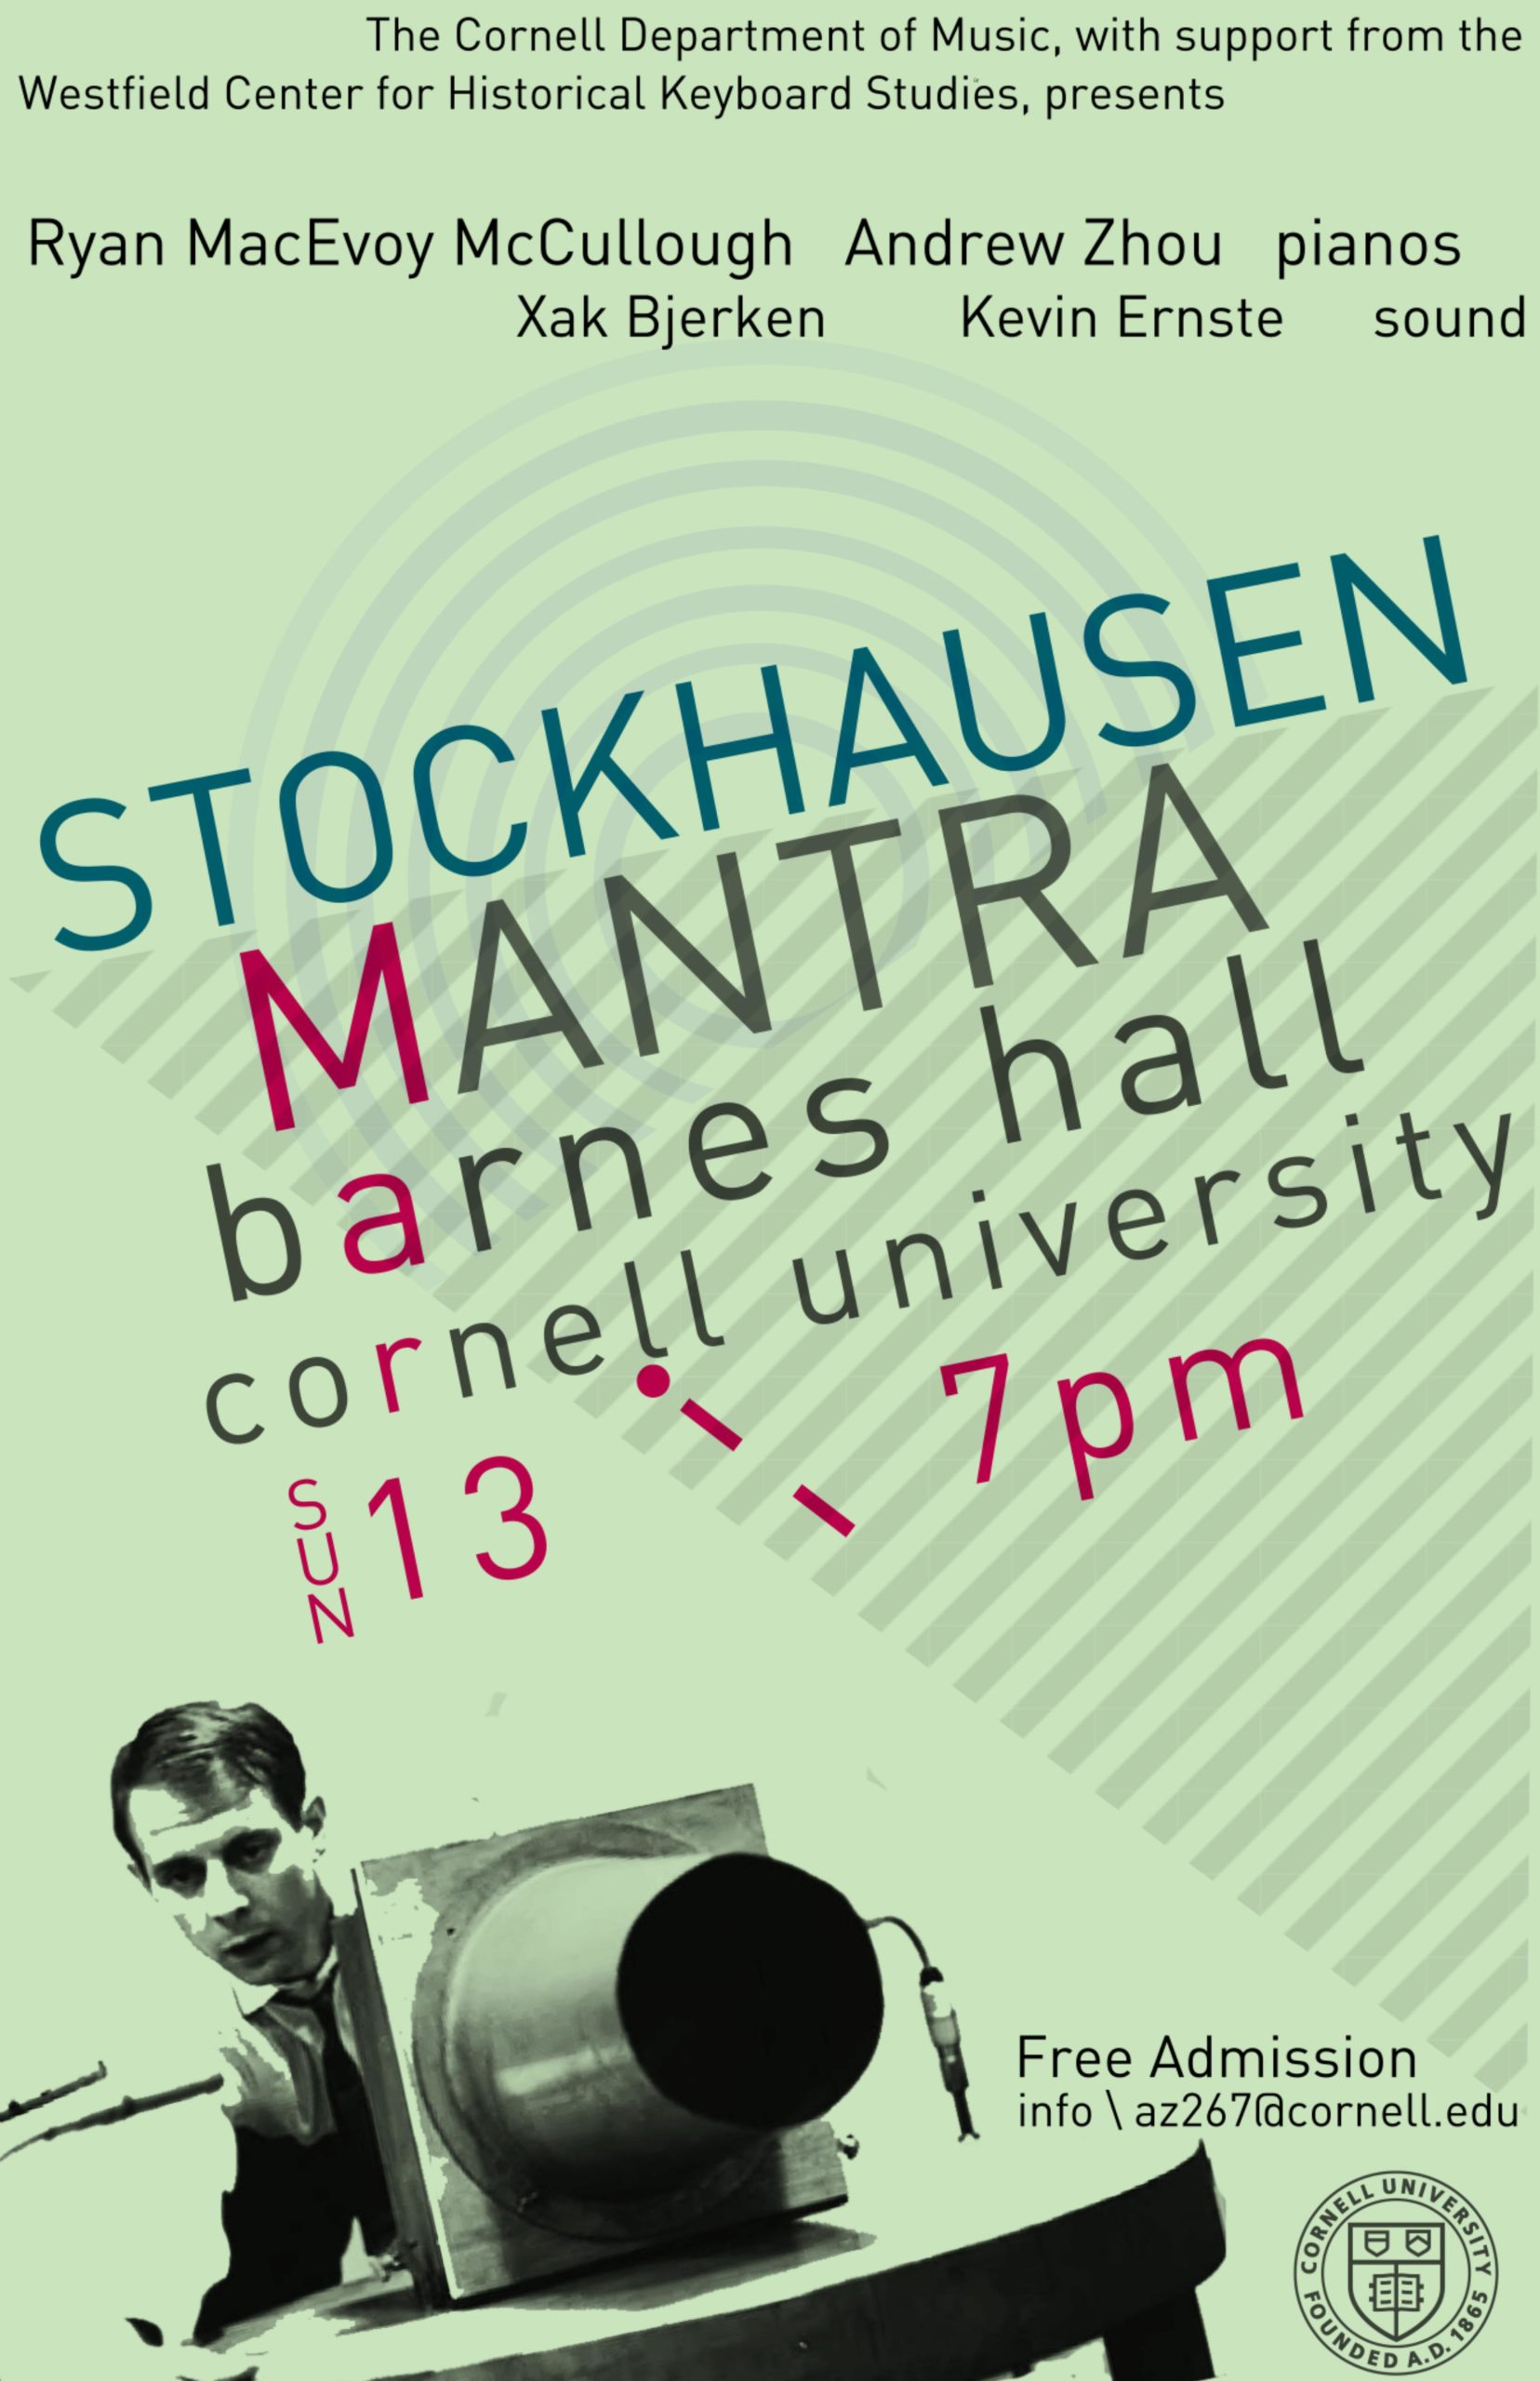 Poster for a performance of Stockhausen's Mantra, March 13, 2016